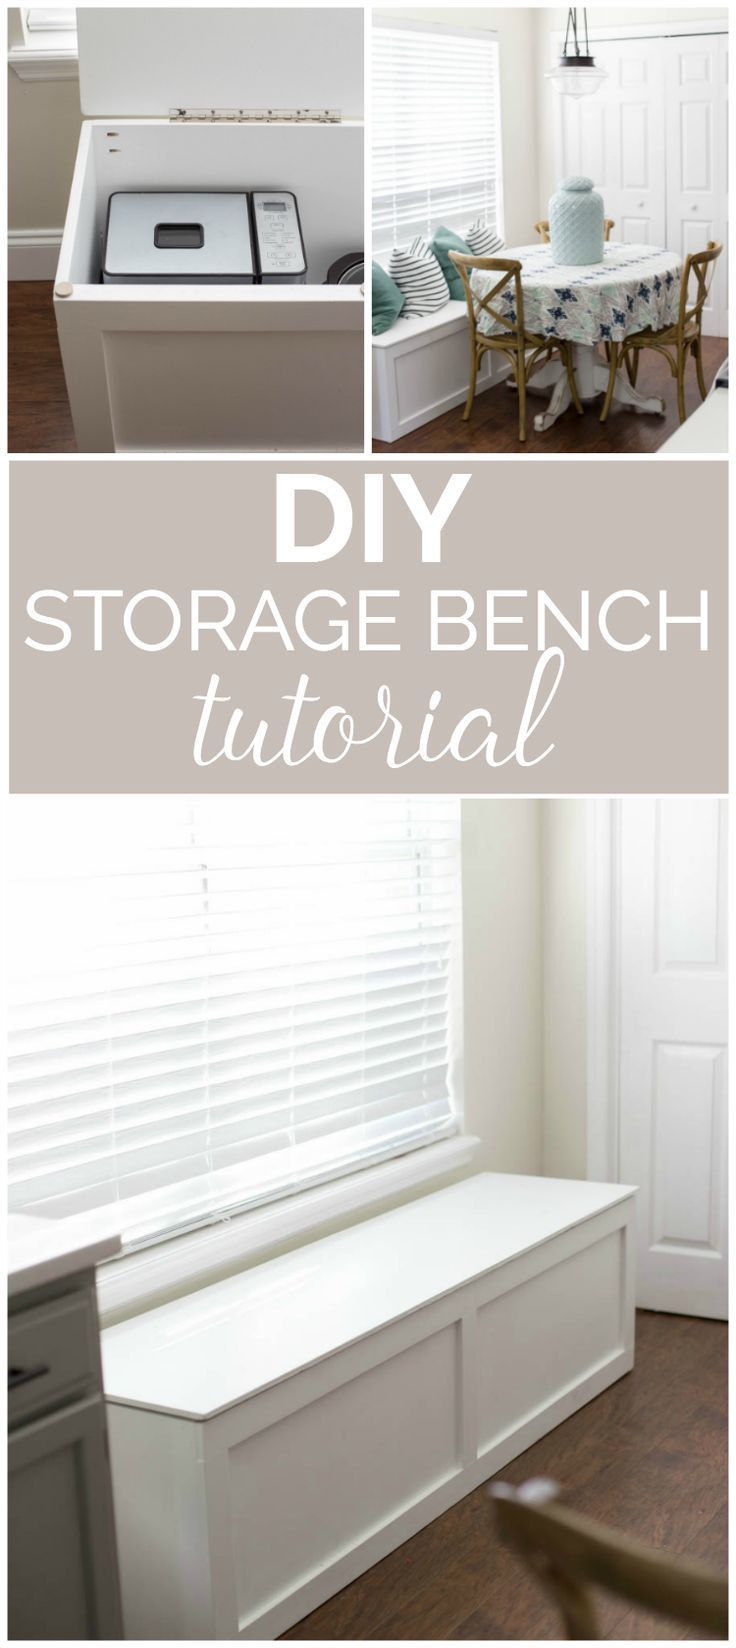 DIY Storage Bench Tutorial- How great to have that added storage space for small appliances!